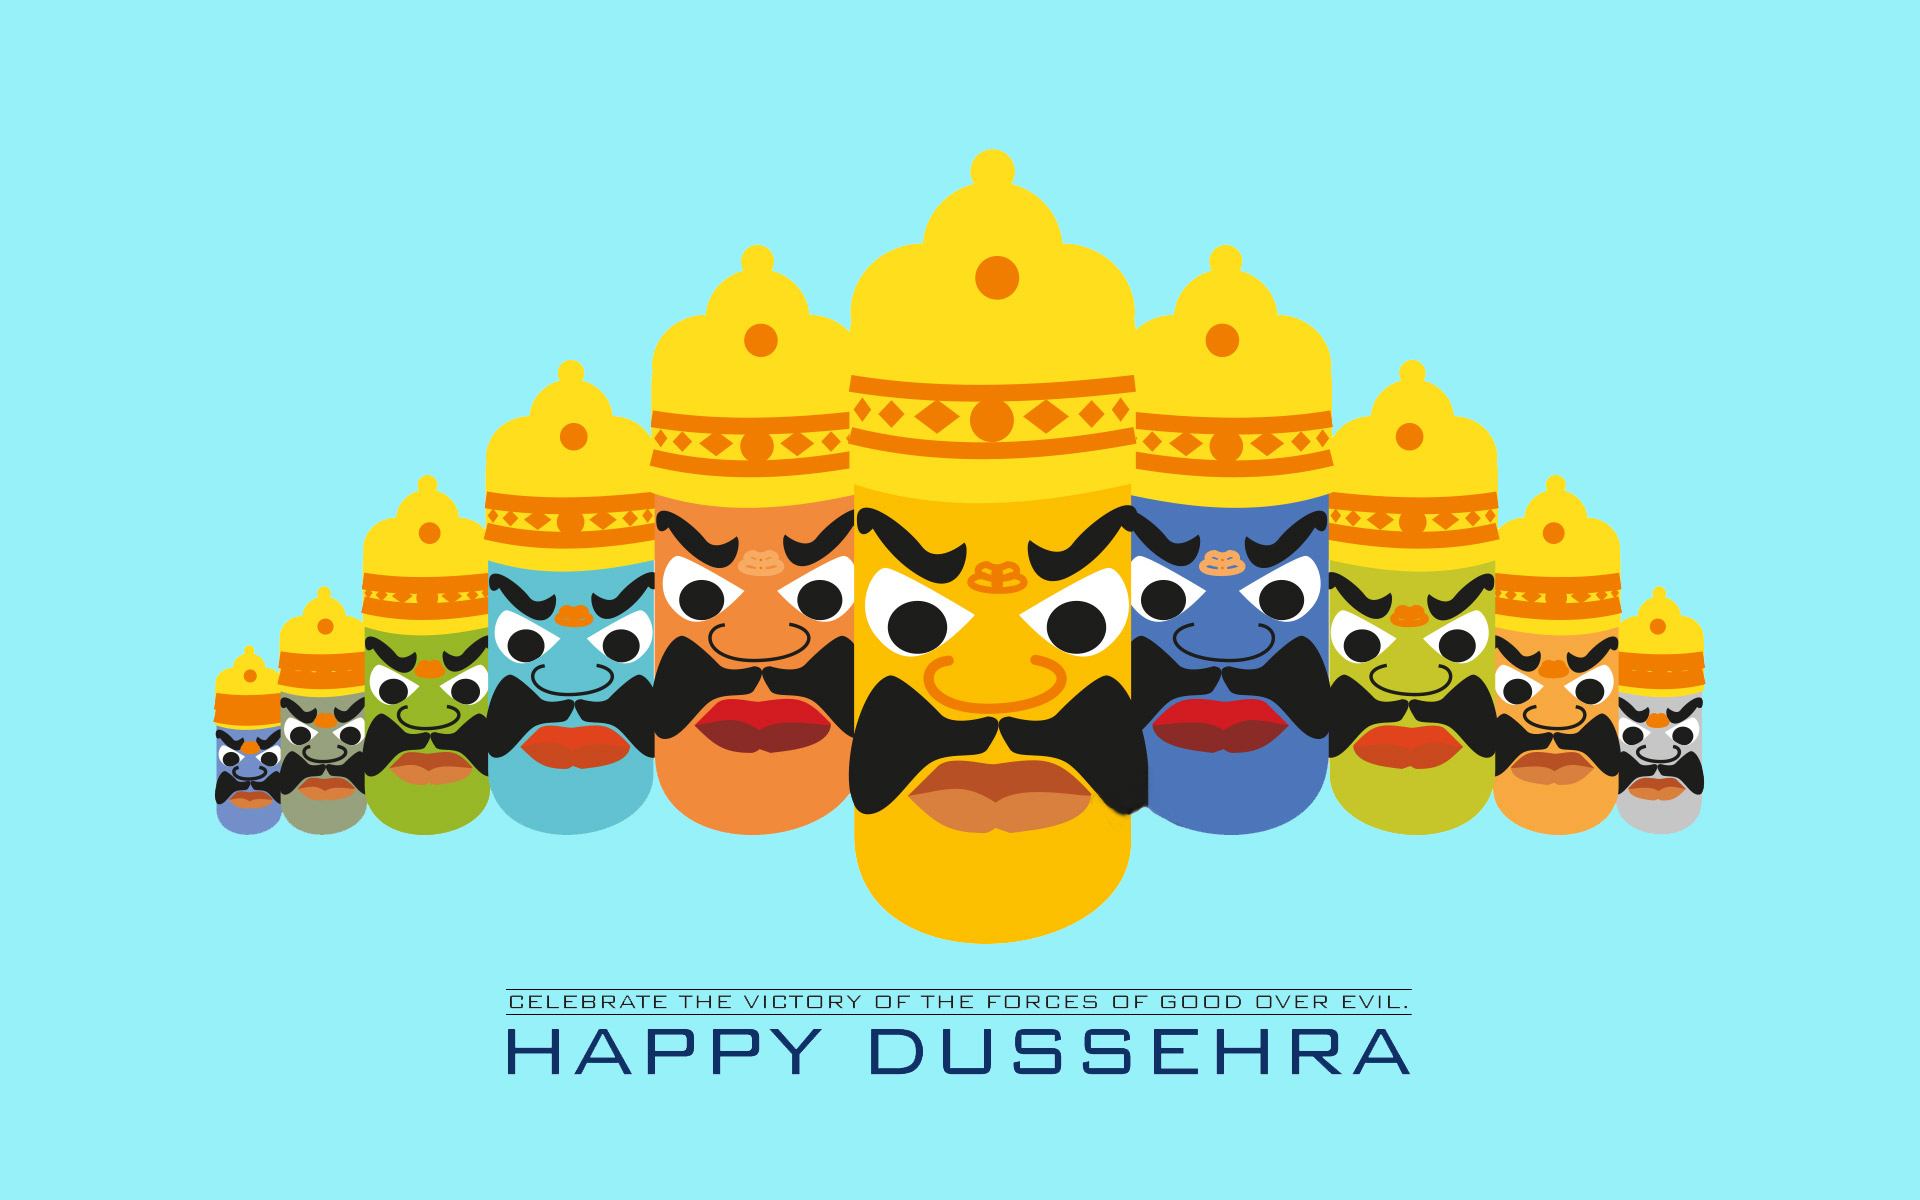 dussehra essay in english Dussehra is one of the major festivals in india it is also known as vijayadashami it is celebrated in different parts of.